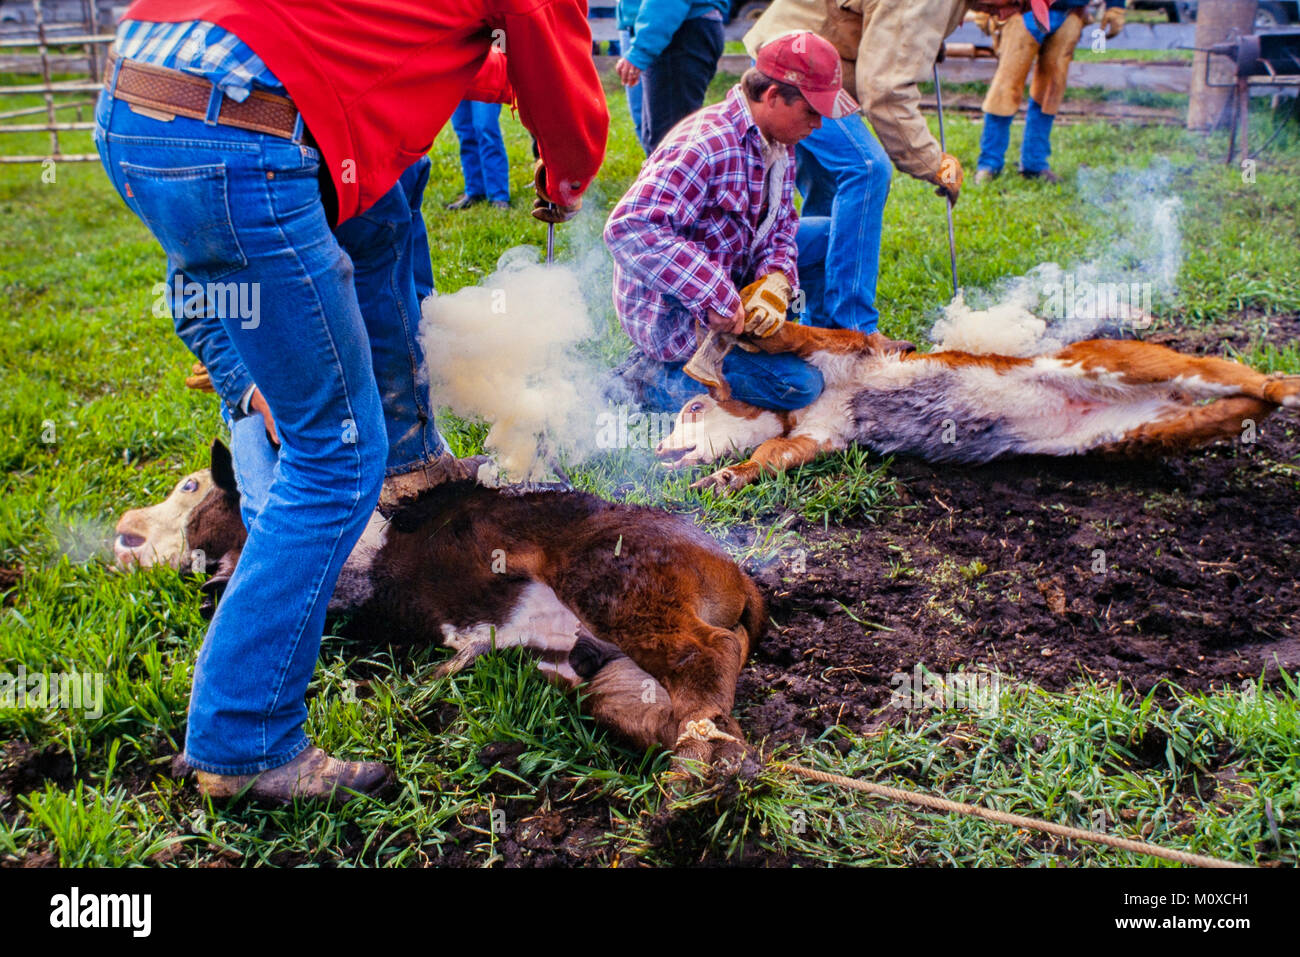 Ranch neighbors geld and brand calves at a cattle roundup and branding in South Dakota. - Stock Image